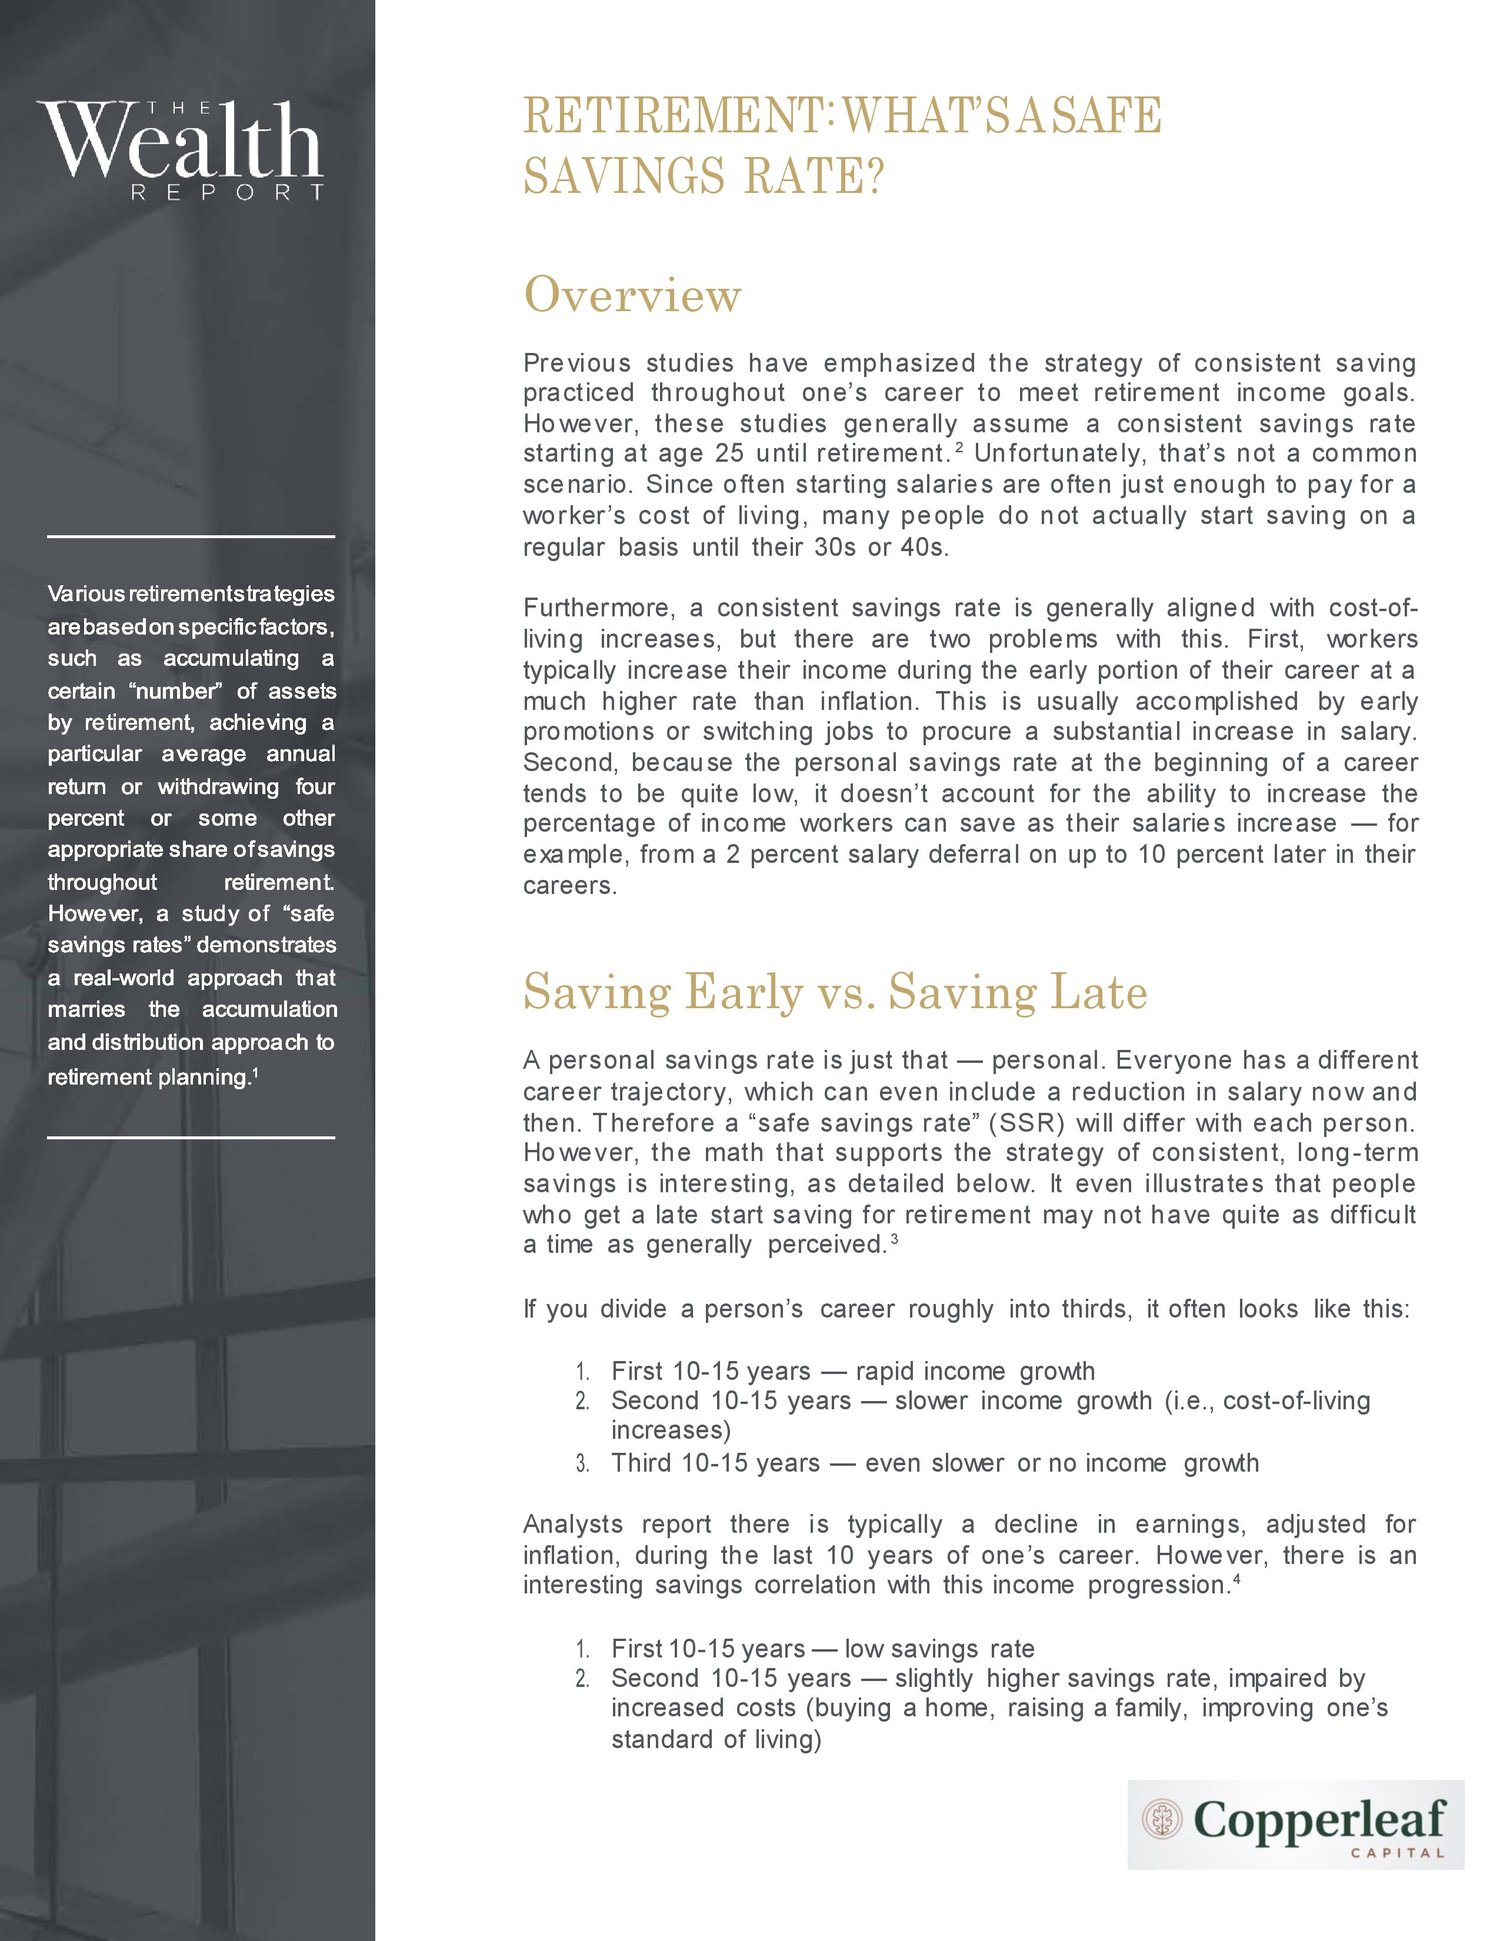 RETIREMENT: WHAT'S A SAFE SAVINGS RATE? — Copperleaf Capital